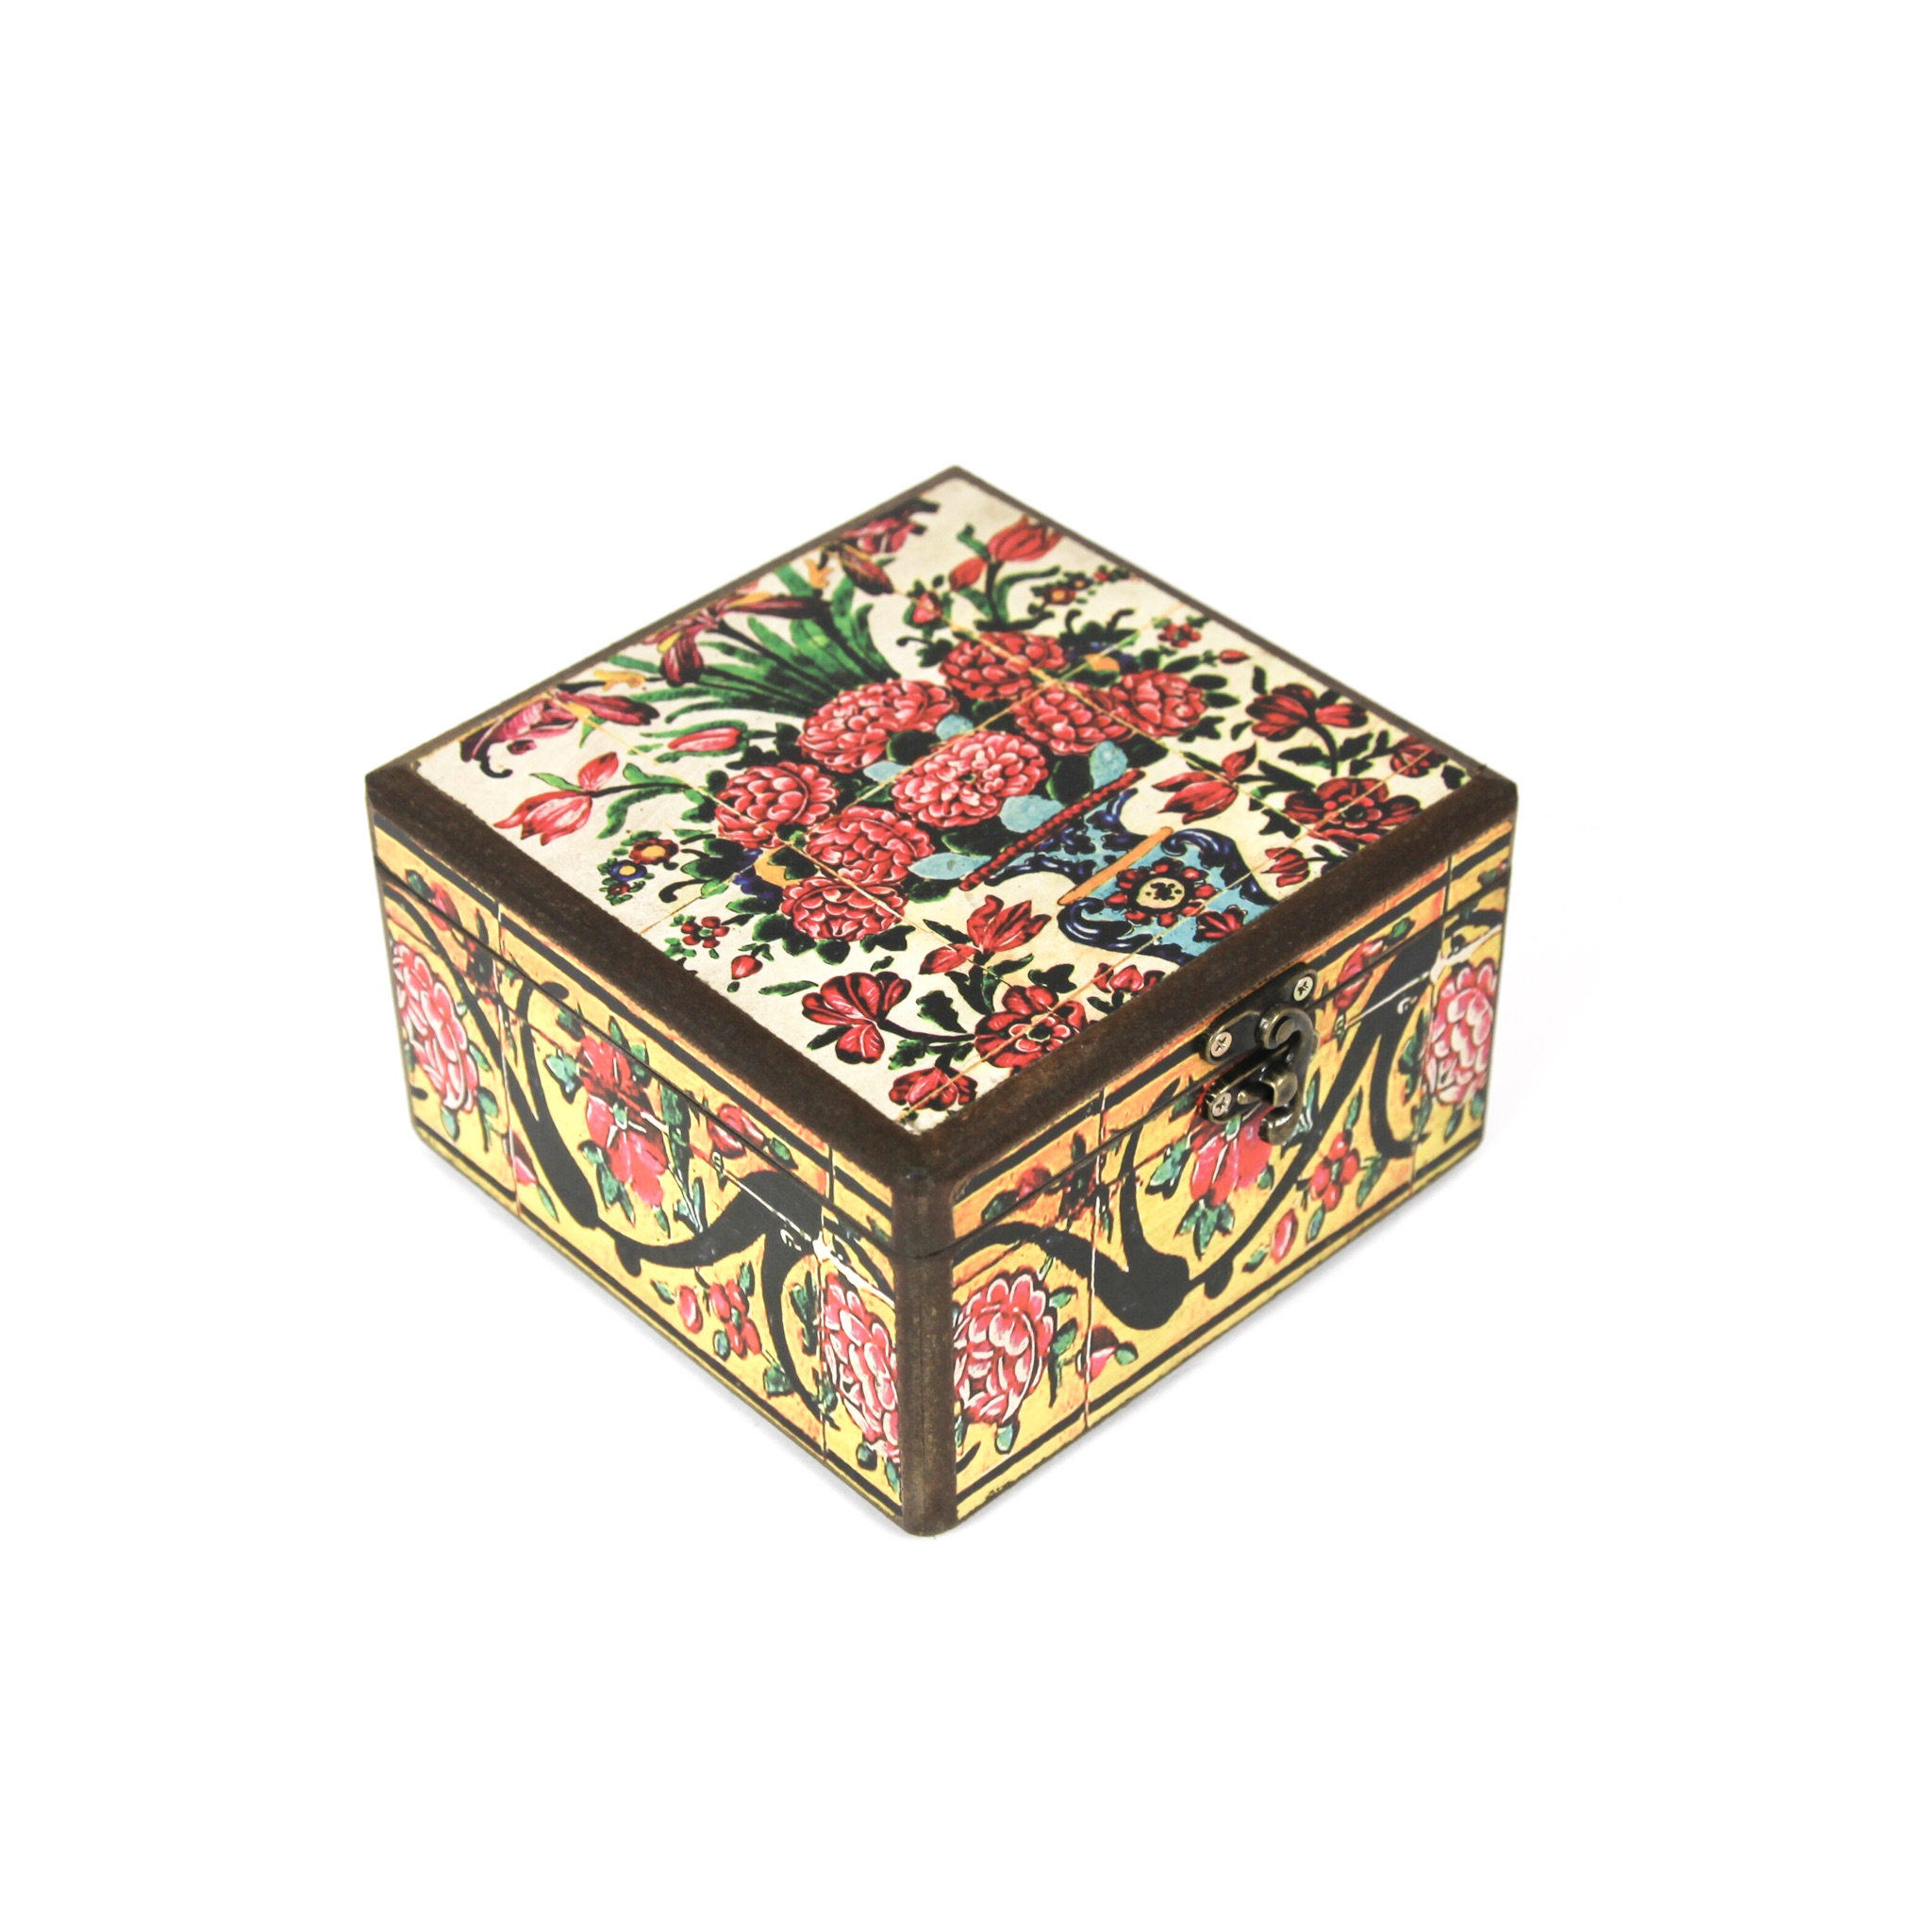 Wooden tea box with Iranian tile patterns code 06 ( available in 3 sizes)